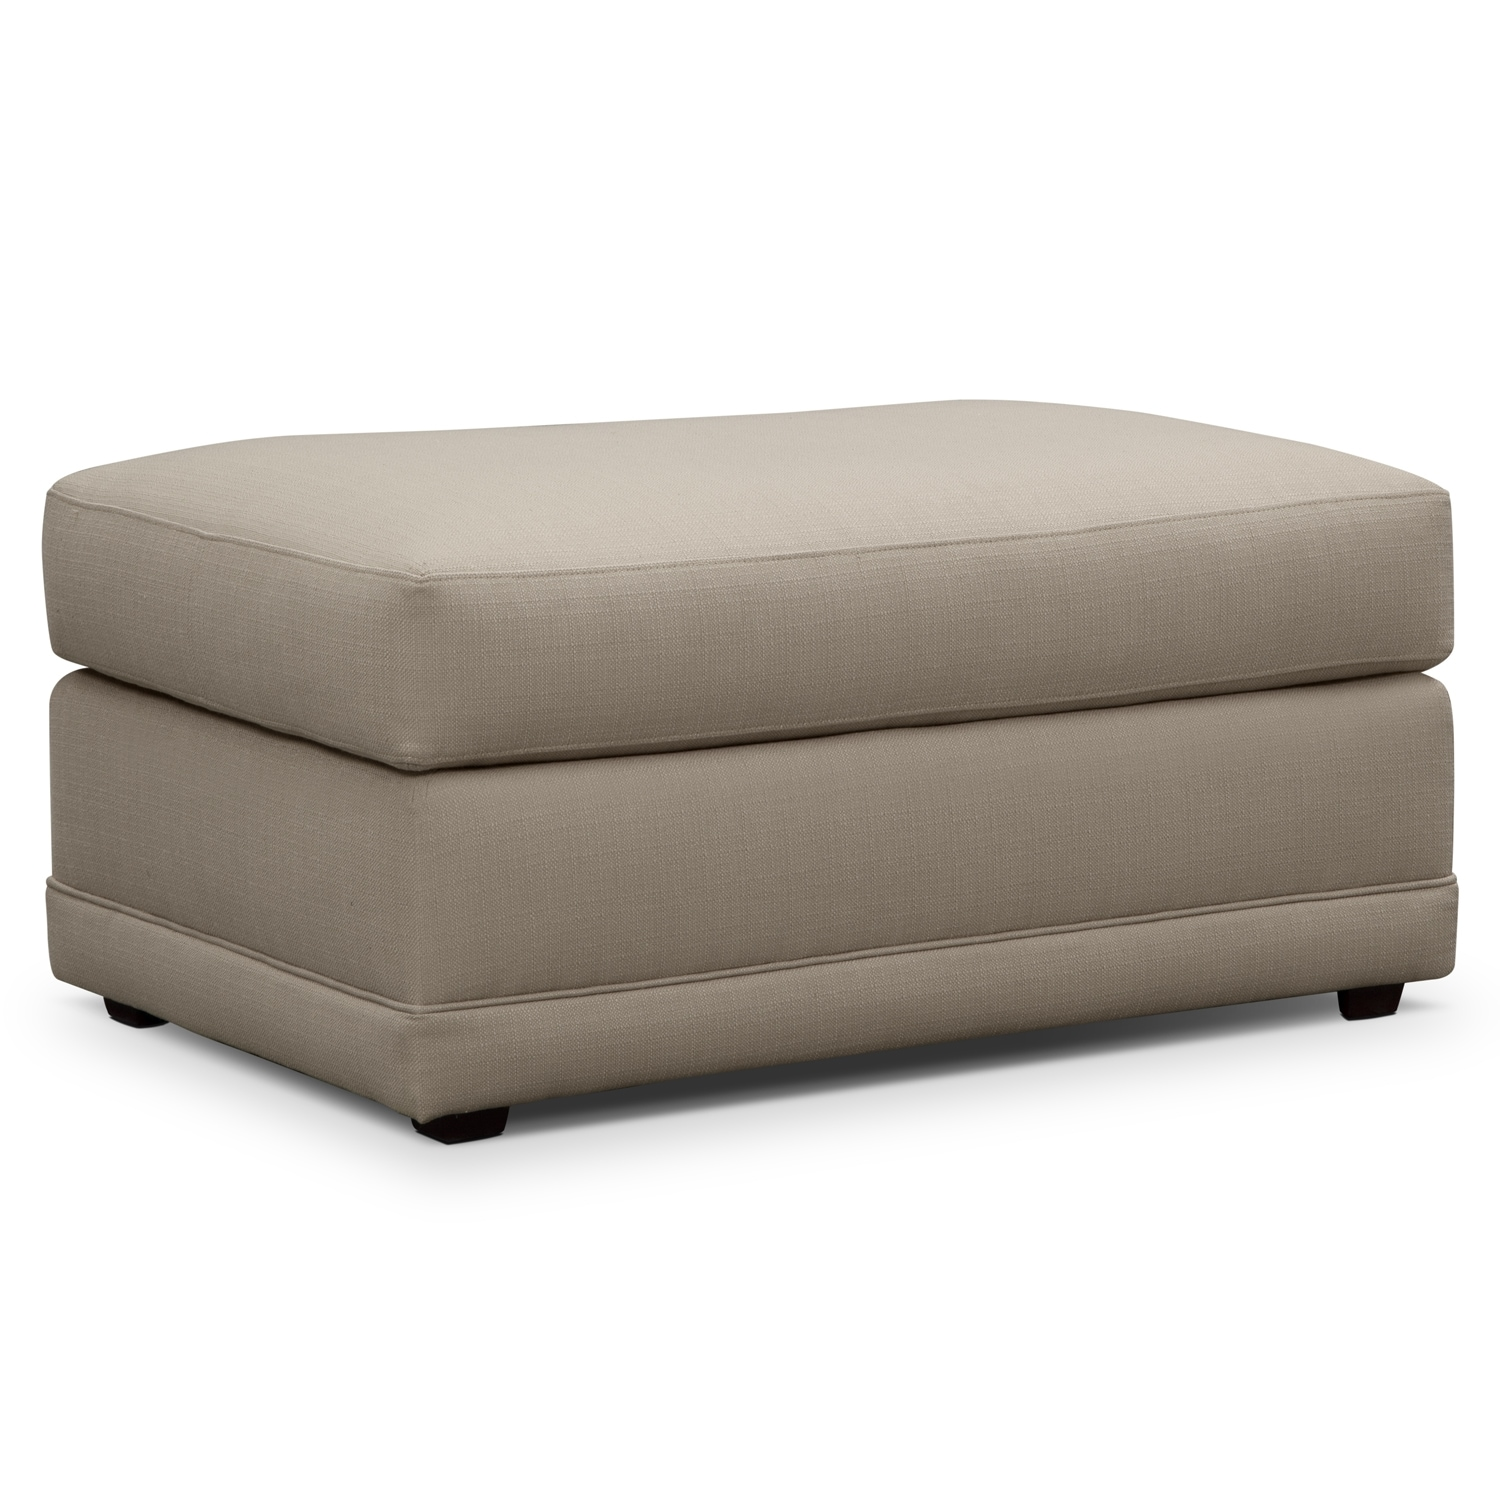 Living Room Furniture - Kismet II Ottoman